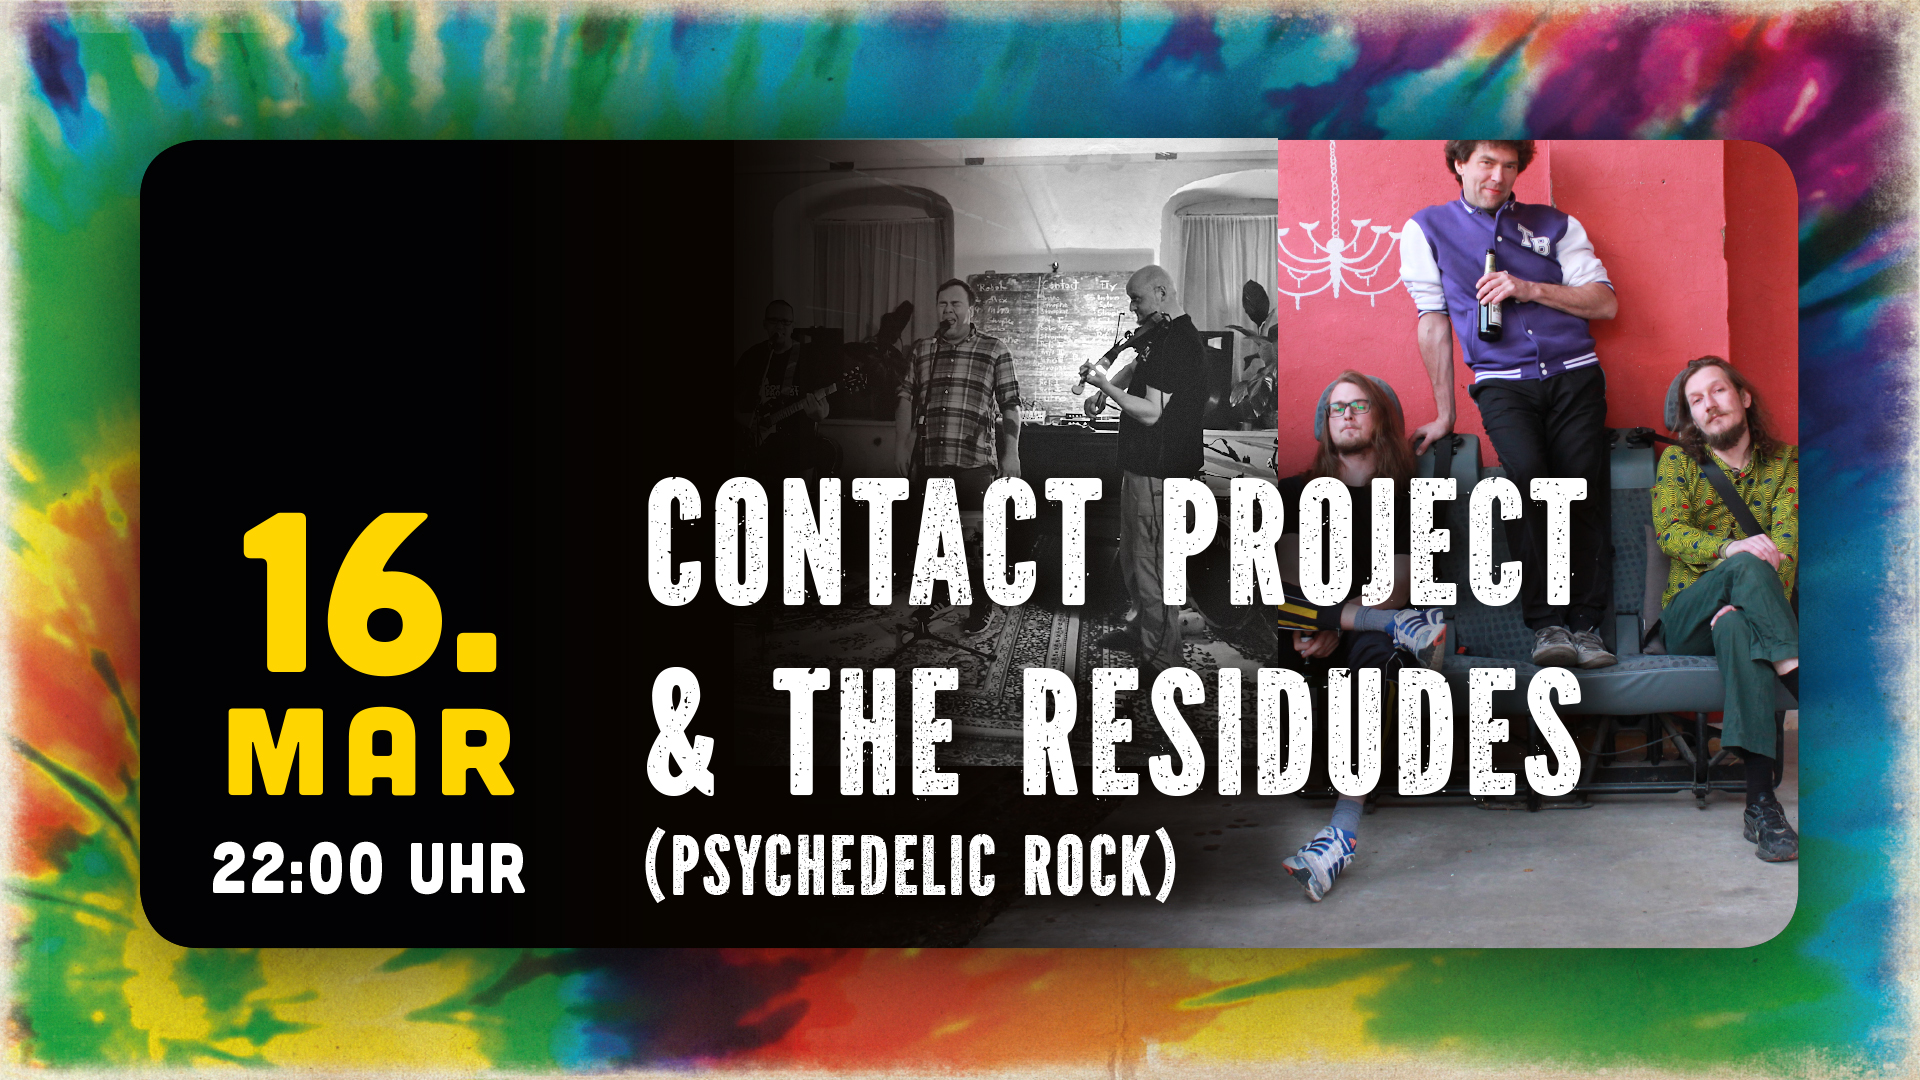 Contact Project + The Residudes